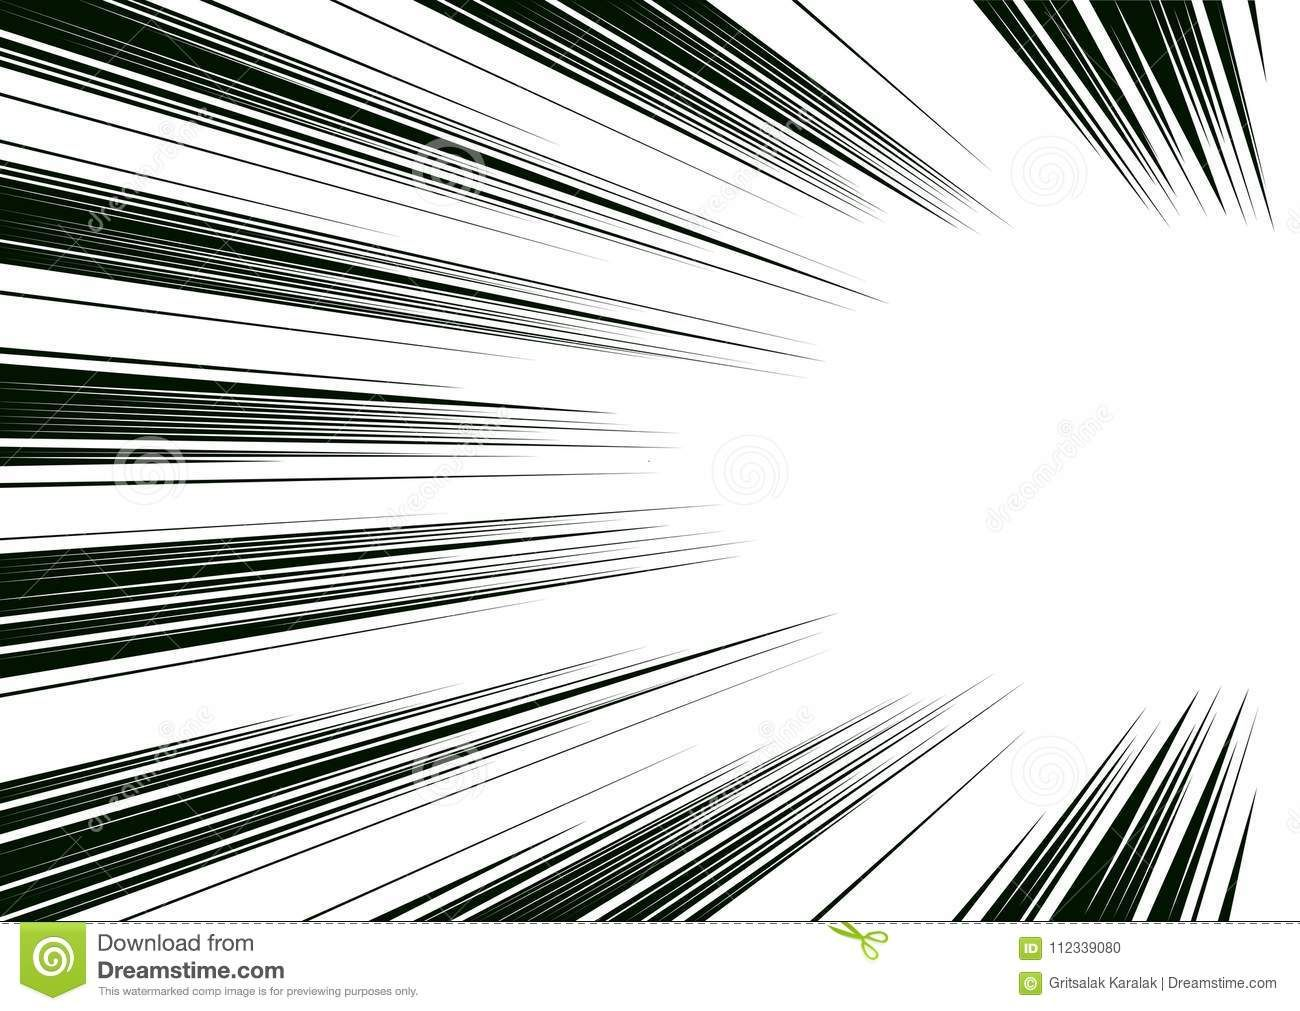 Comic And Manga Books Speed Lines Background Superhero Action Explosion Background Black And White Stock Illustration Line Background Background Screentone